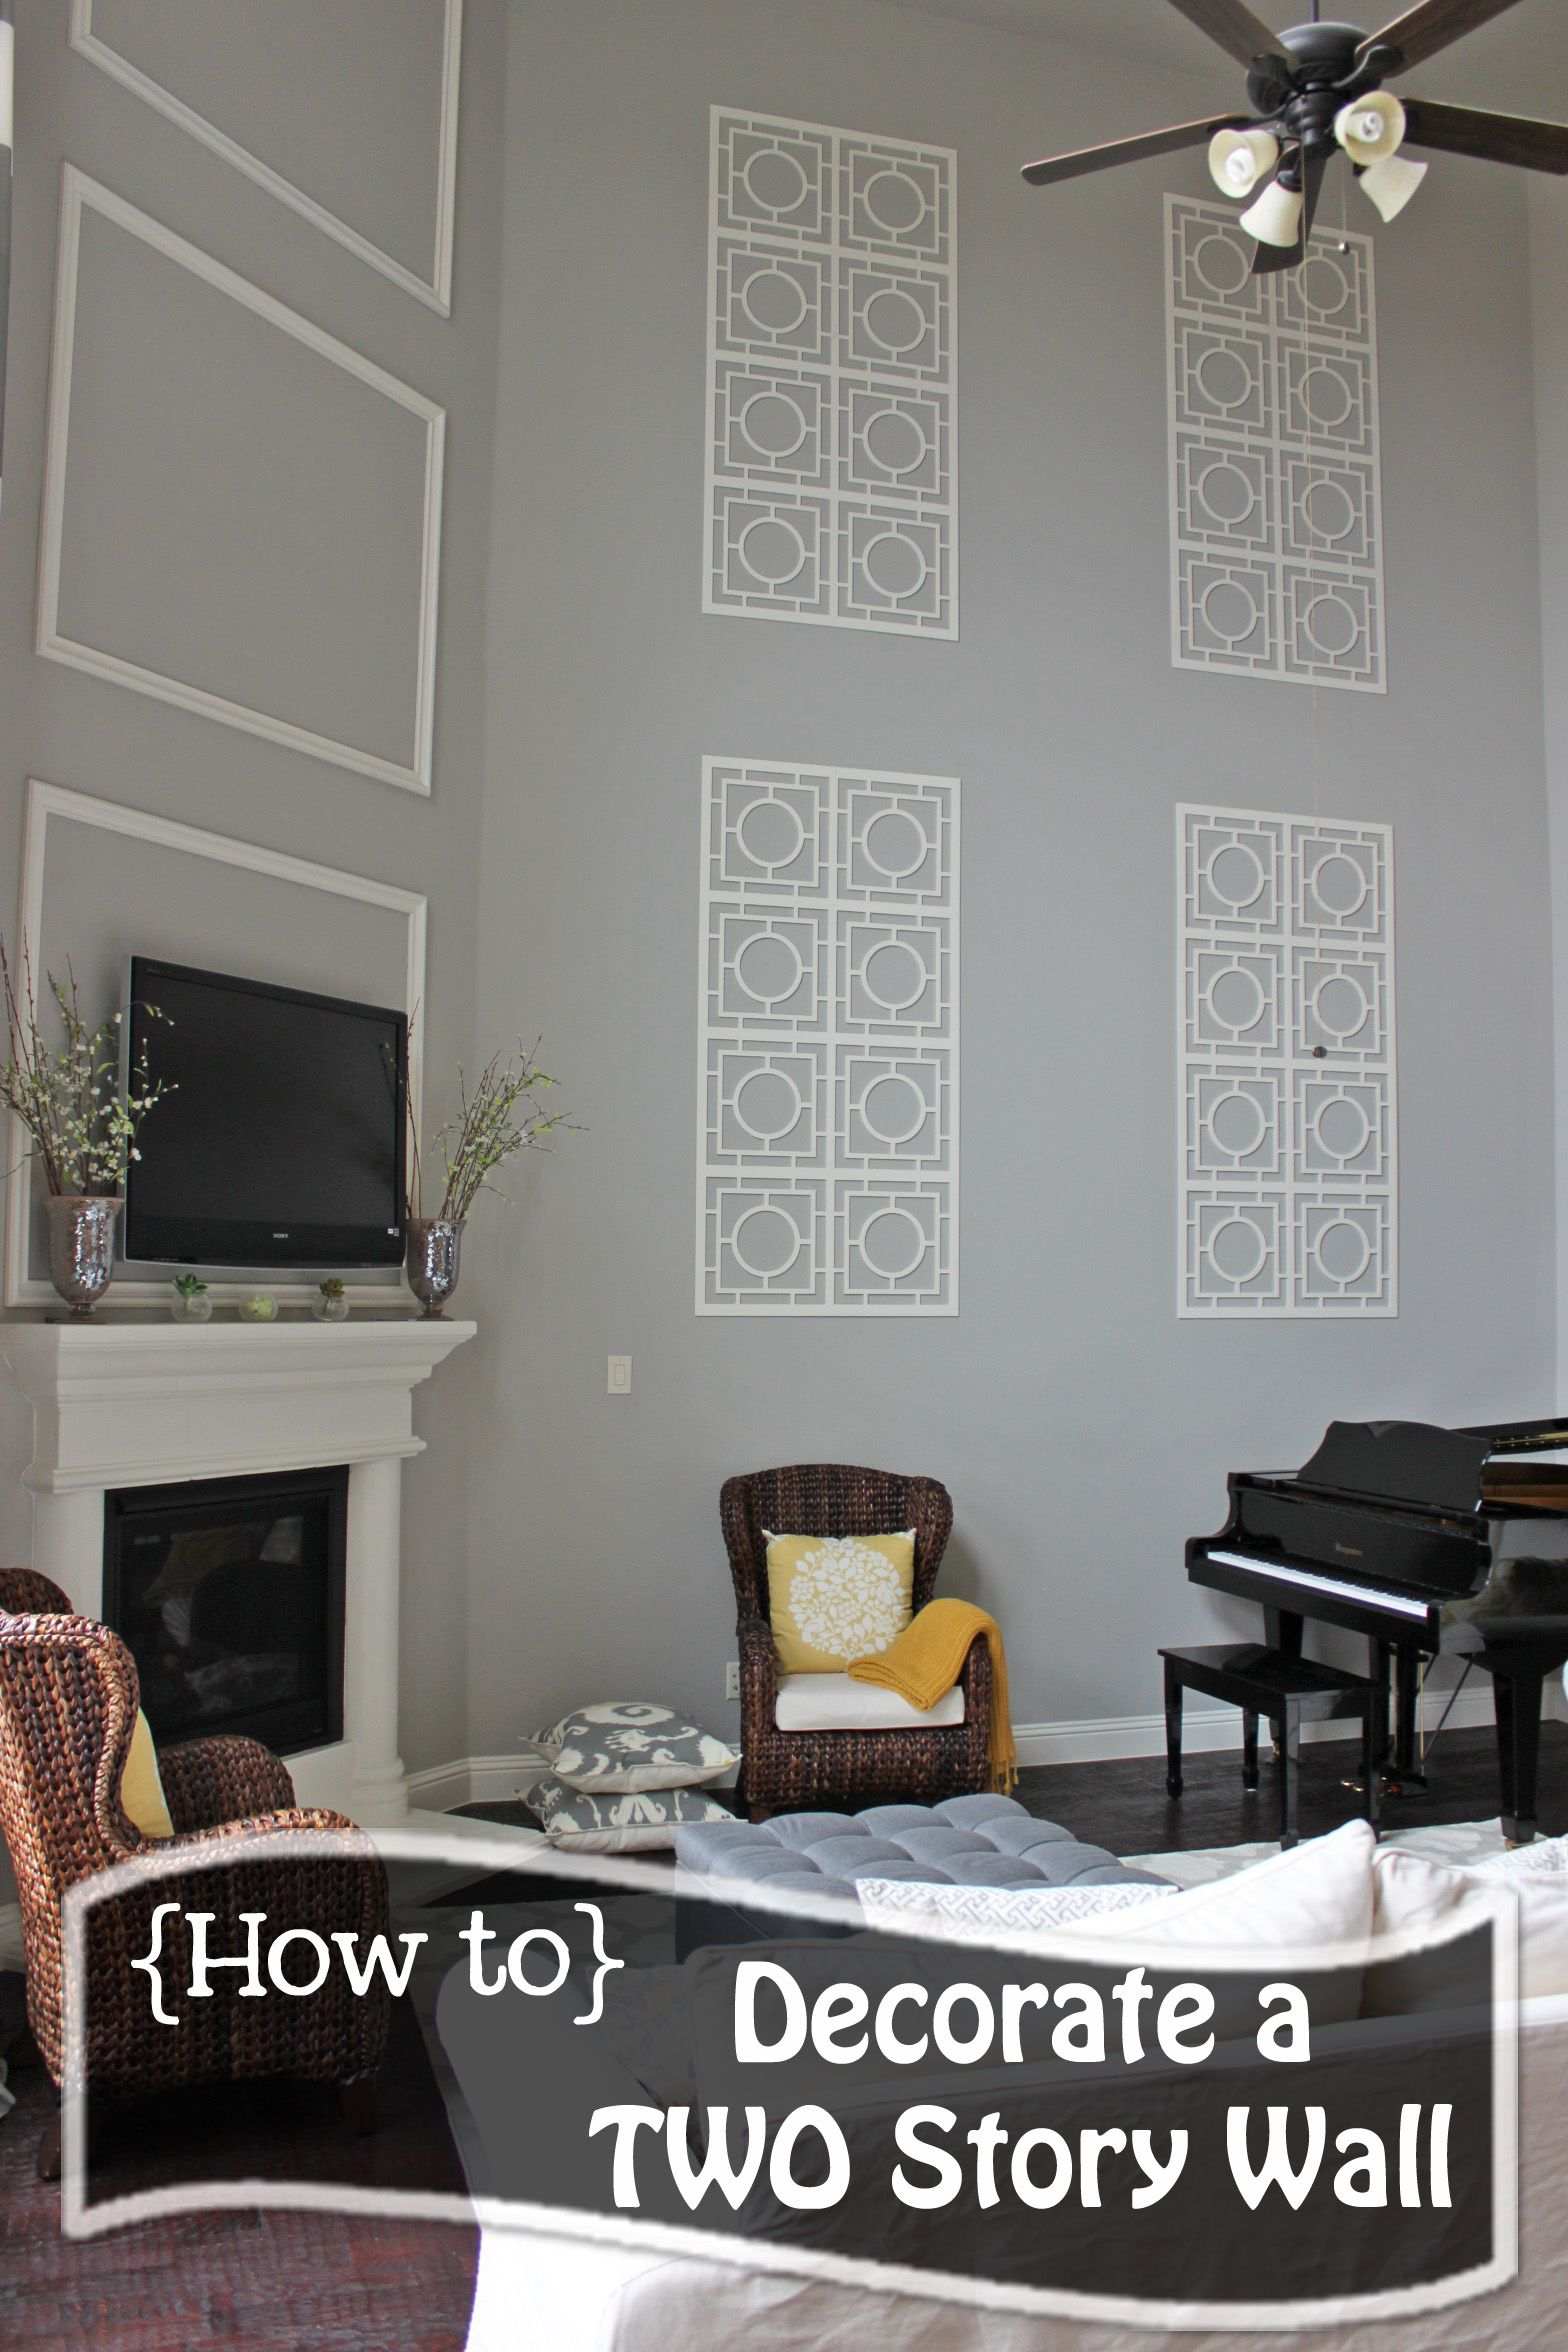 How to Decorate a TWO STORY wall! What to do with those